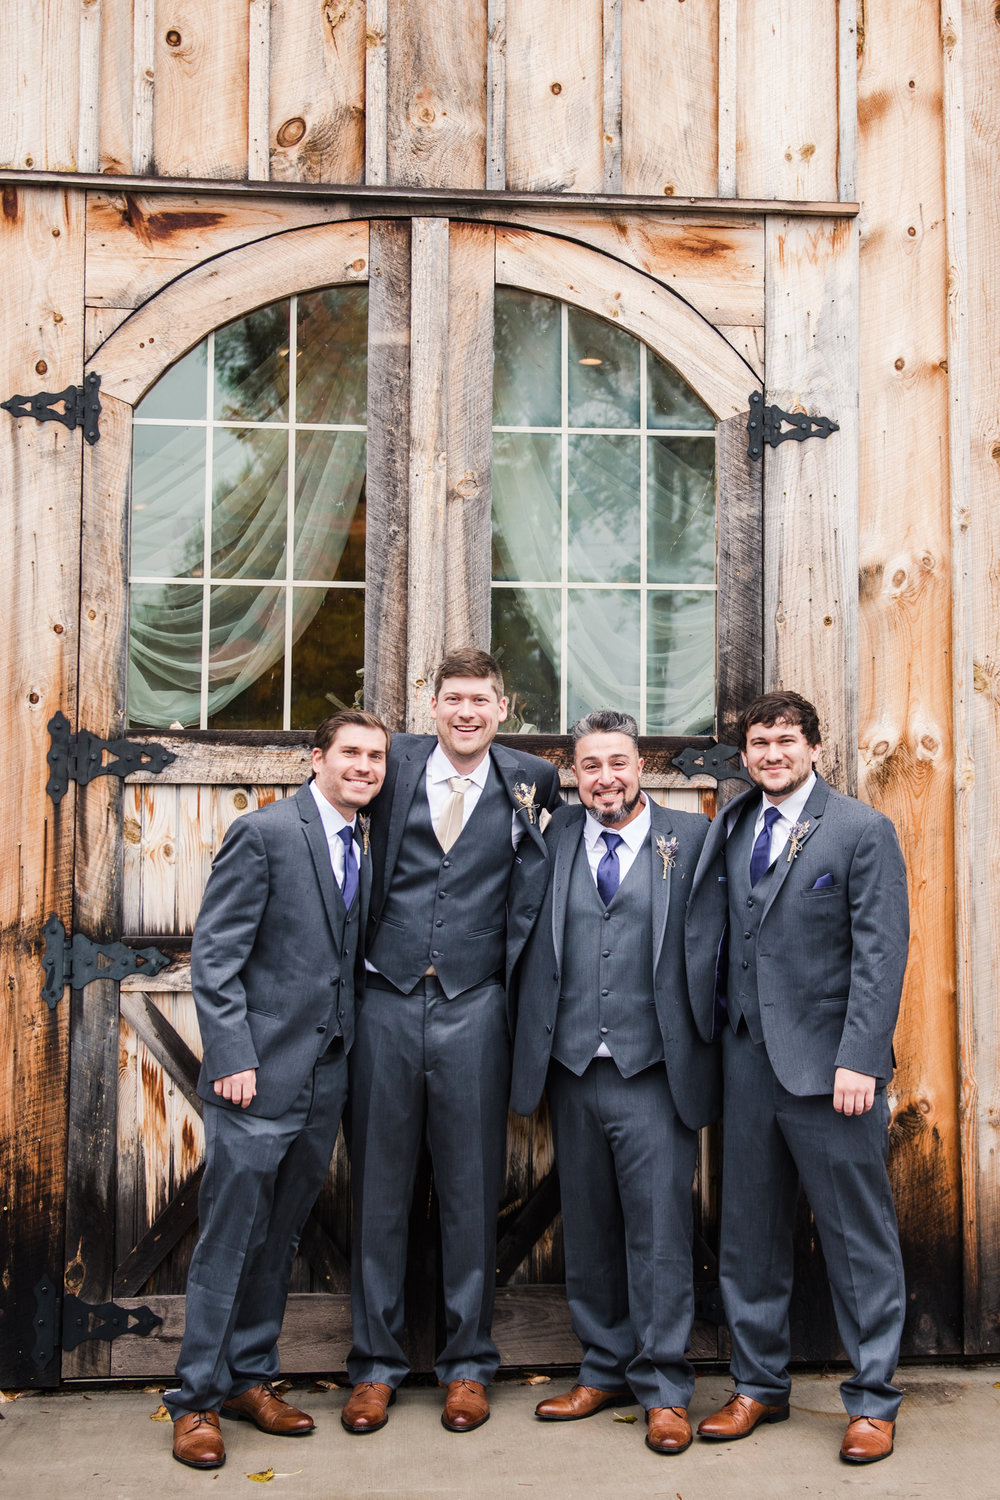 Wolf_Oak_Acres_Central_NY_Wedding_JILL_STUDIO_Rochester_NY_Photographer_DSC_7374.jpg